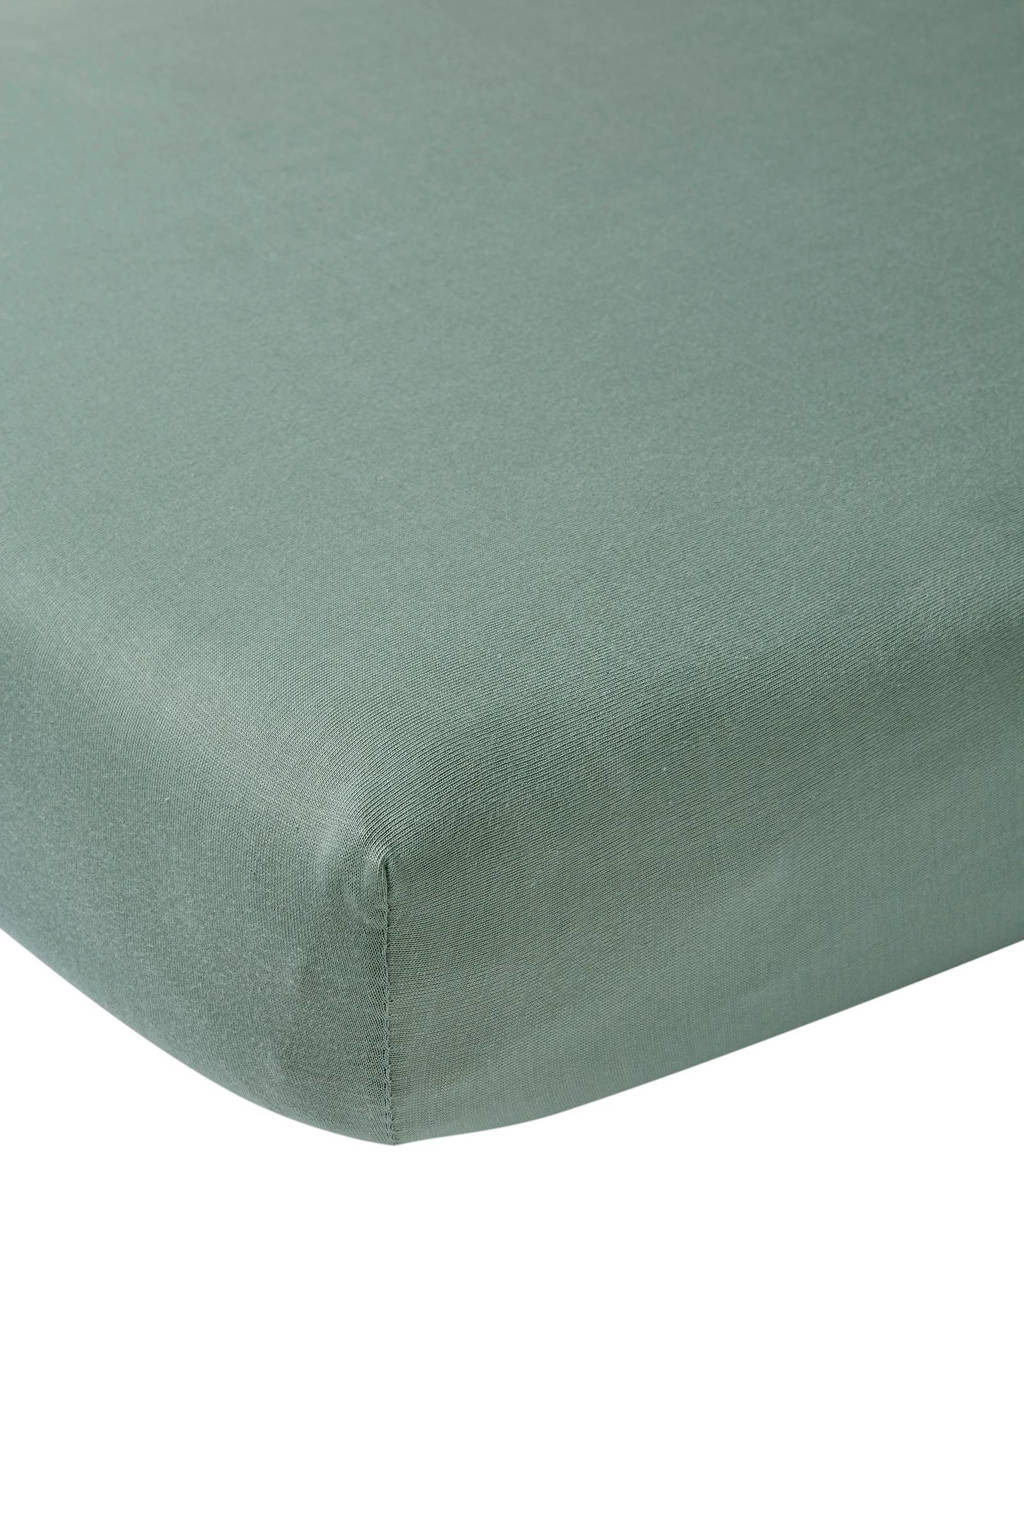 Meyco jersey hoeslaken peuterbed 70x140/150 cm Stone green, Stone Green